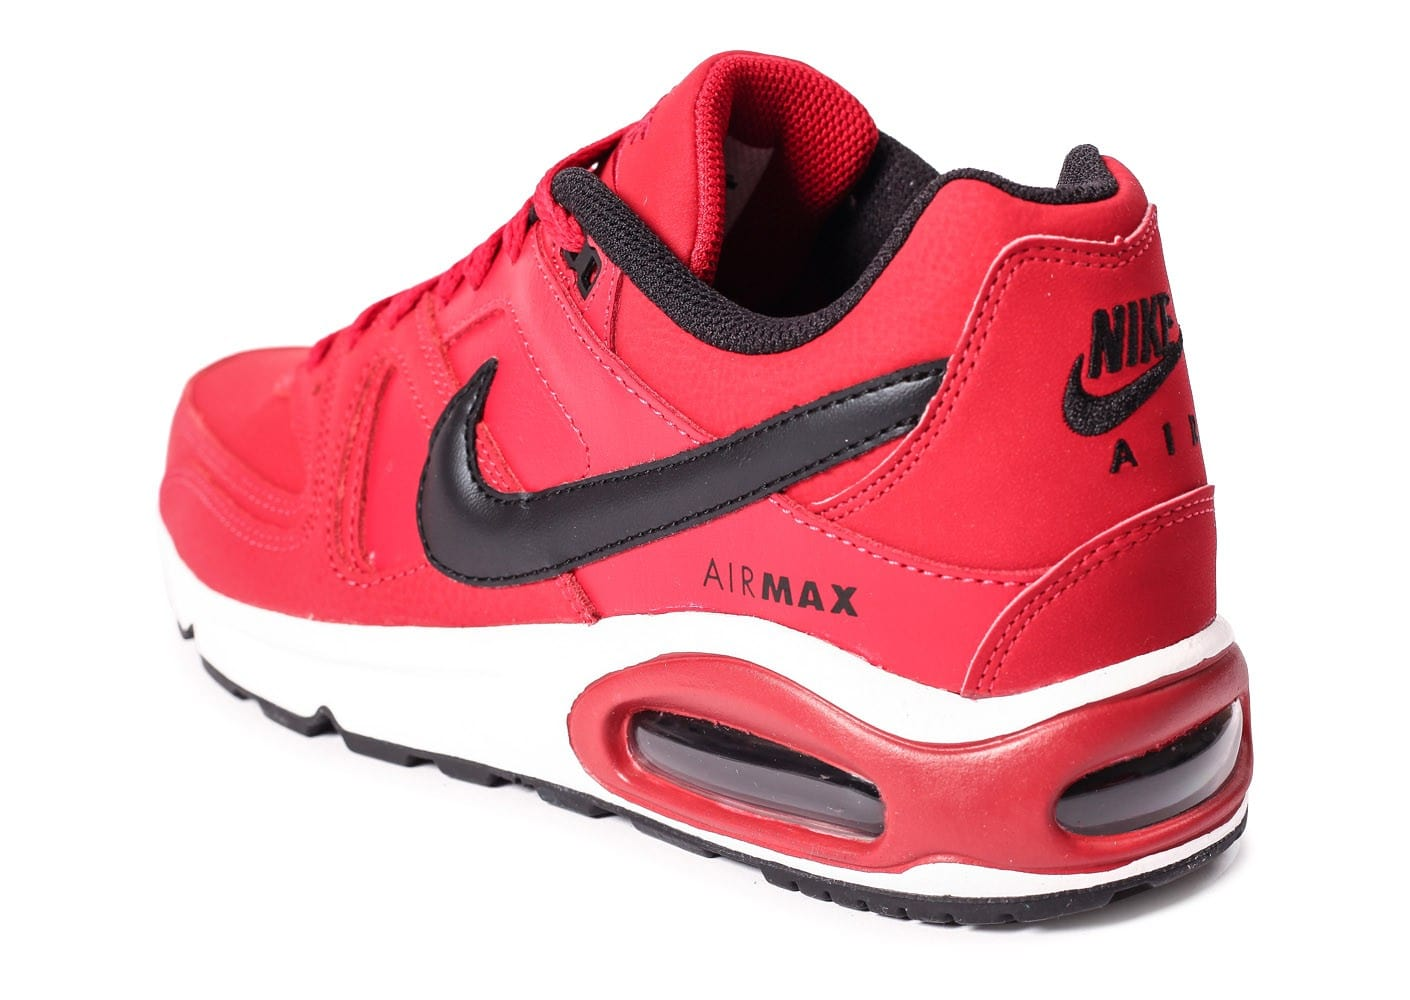 171653b1f8aa7 nike air max command leather,homme cuir textile nike air max command ...